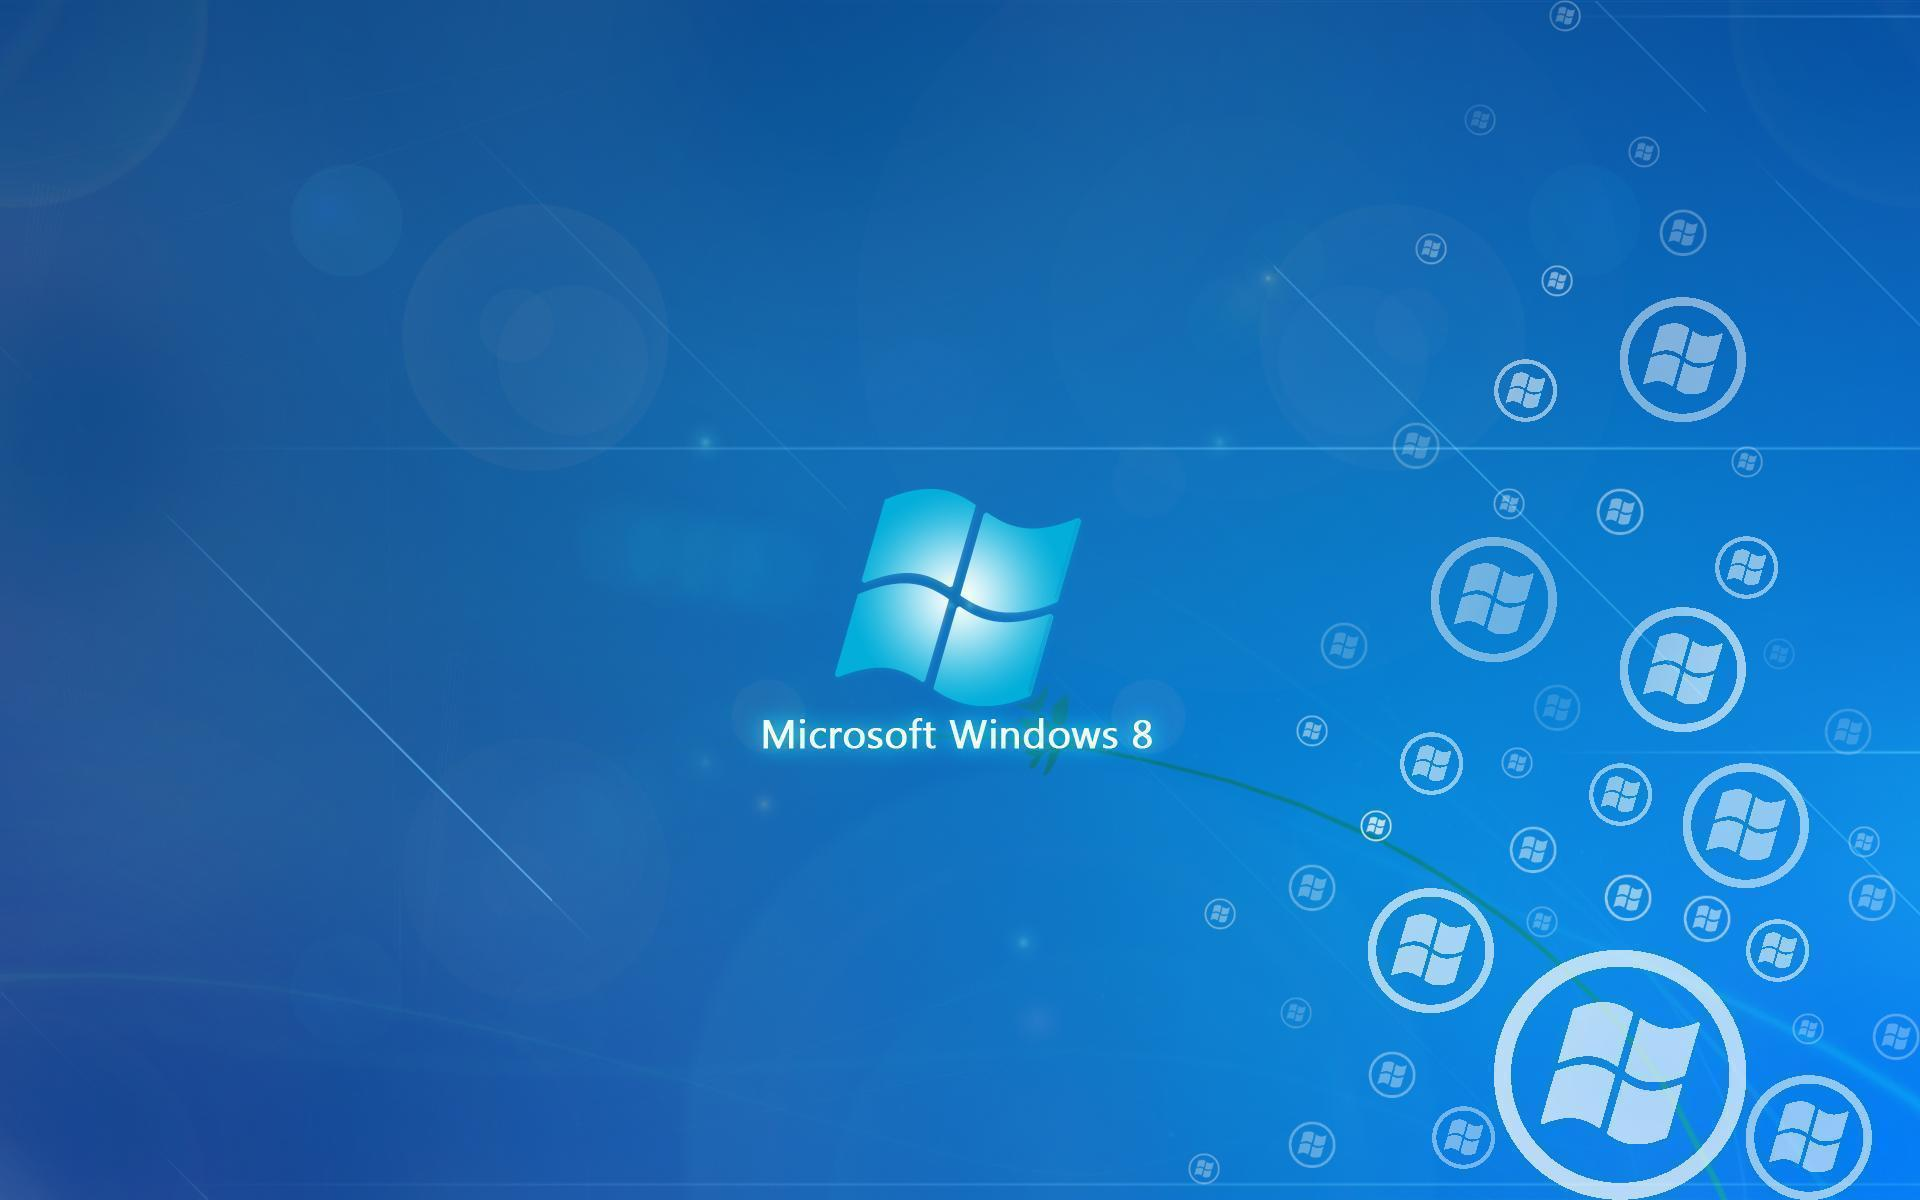 30+ Windows 8 Wallpapers that You Must Have